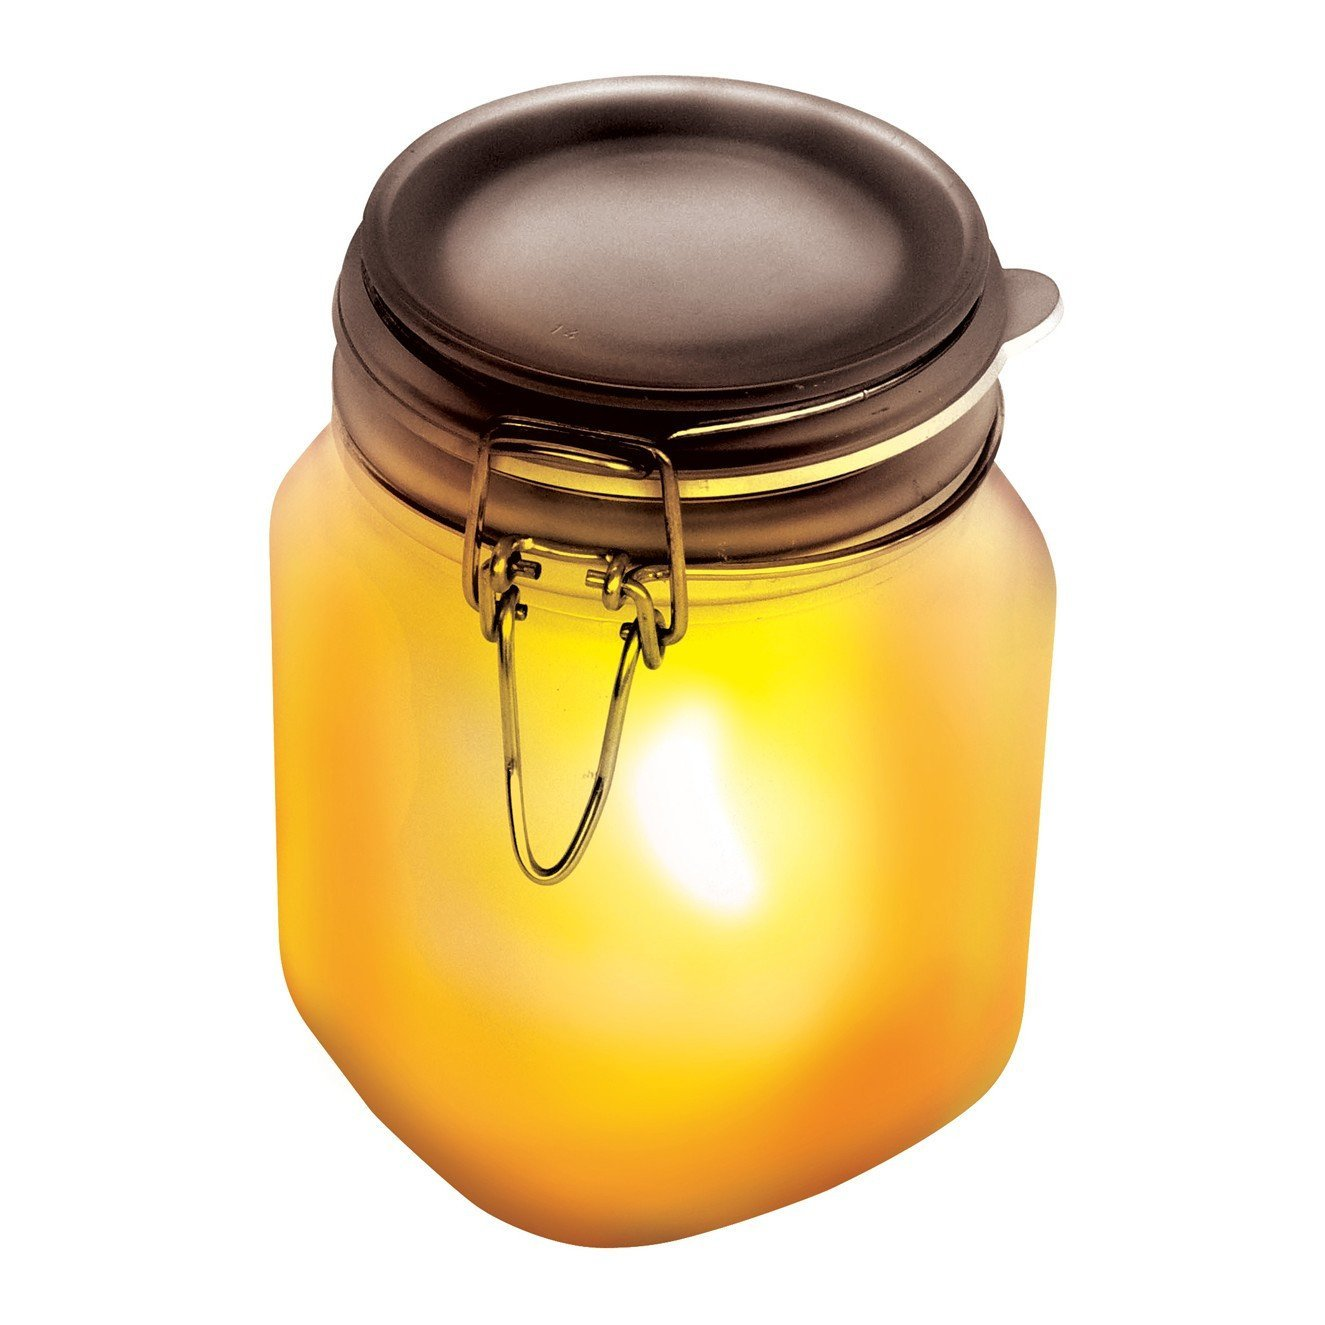 SUCK UK Solar Sun Jar | Suck UK